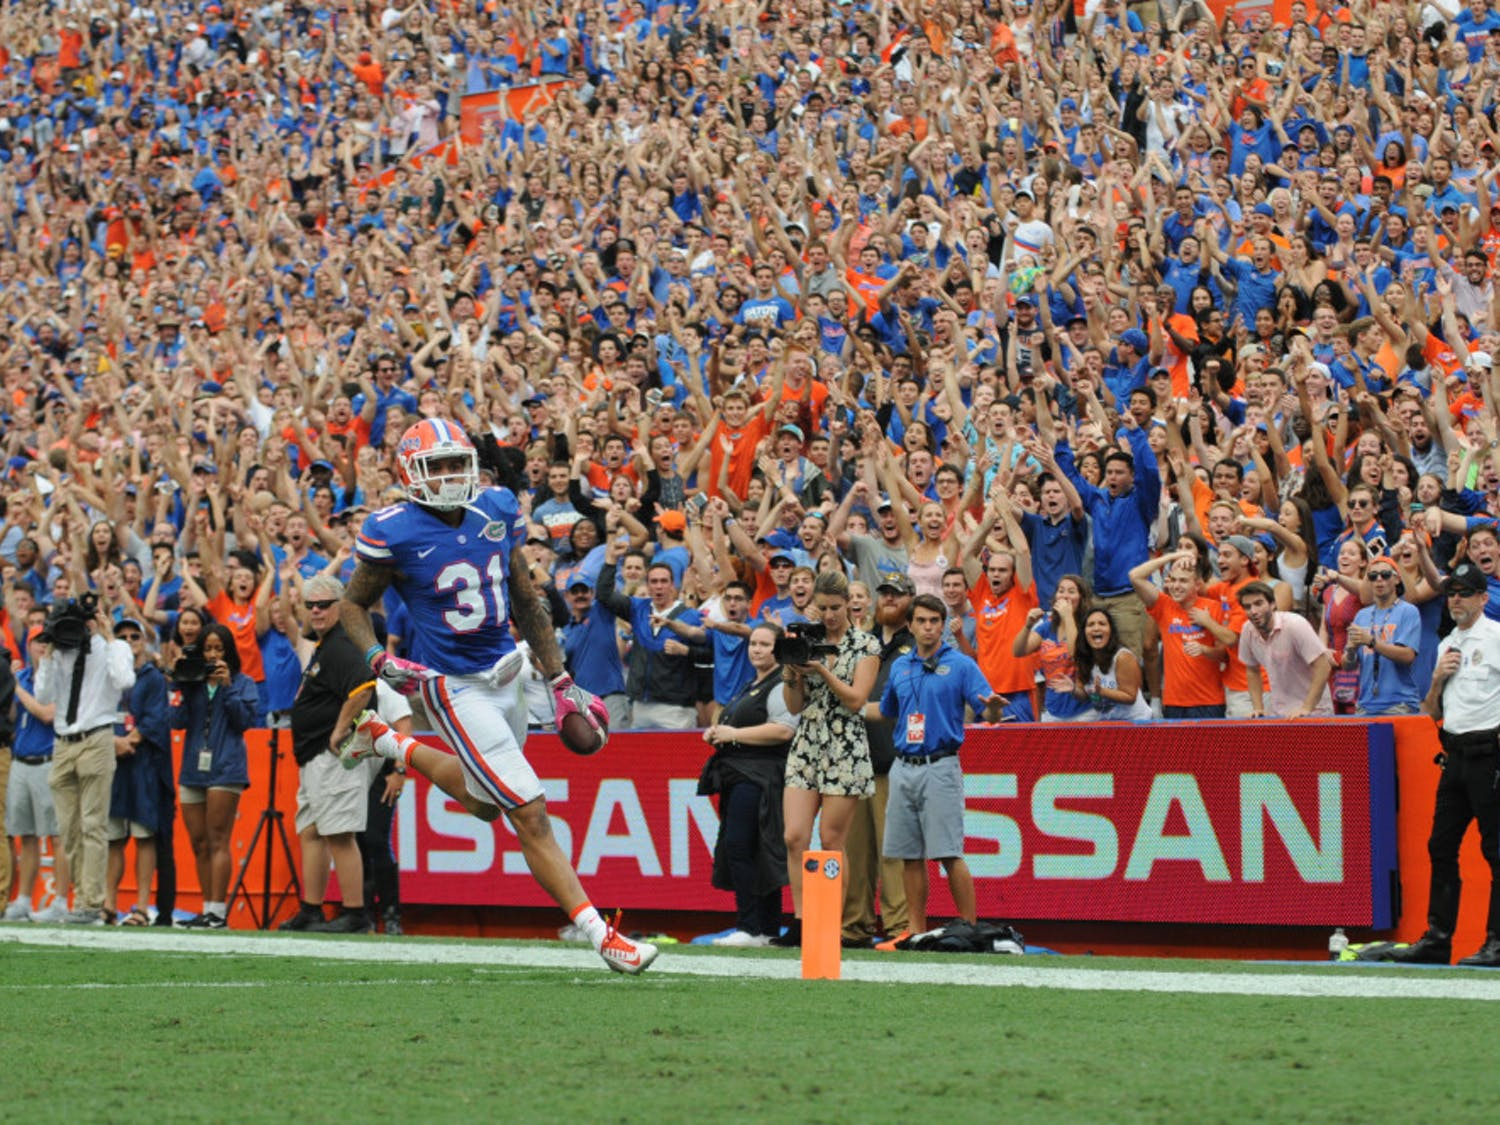 Jalen Tabor returns an interception for a touchdown during Florida's 40-14 win over Missouri on Oct. 15, 2016, at Ben Hill Griffin Stadium.